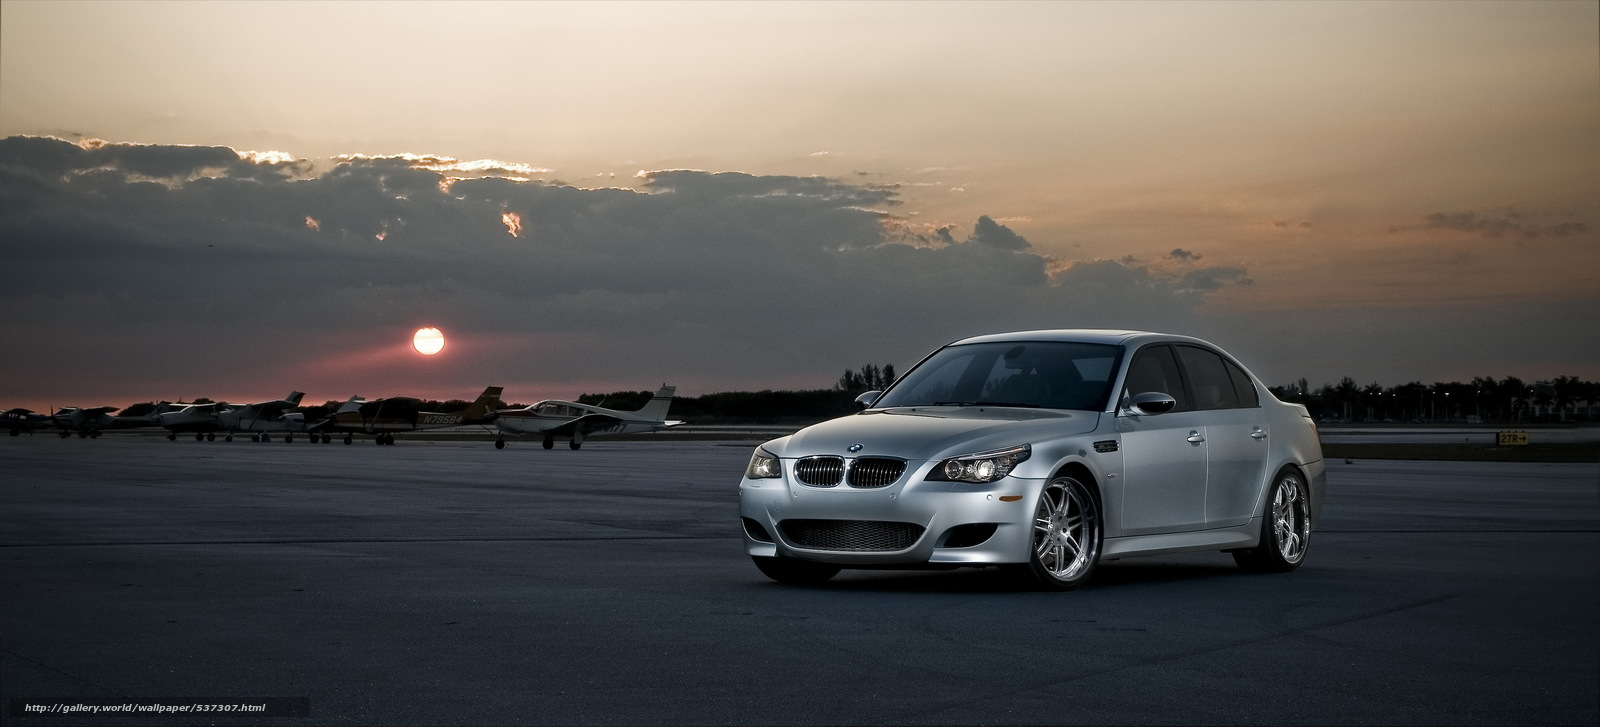 Download wallpaper bmw m5 360 forged split 7 free desktop wallpaper in the resolution 4288x1948 picture 537307